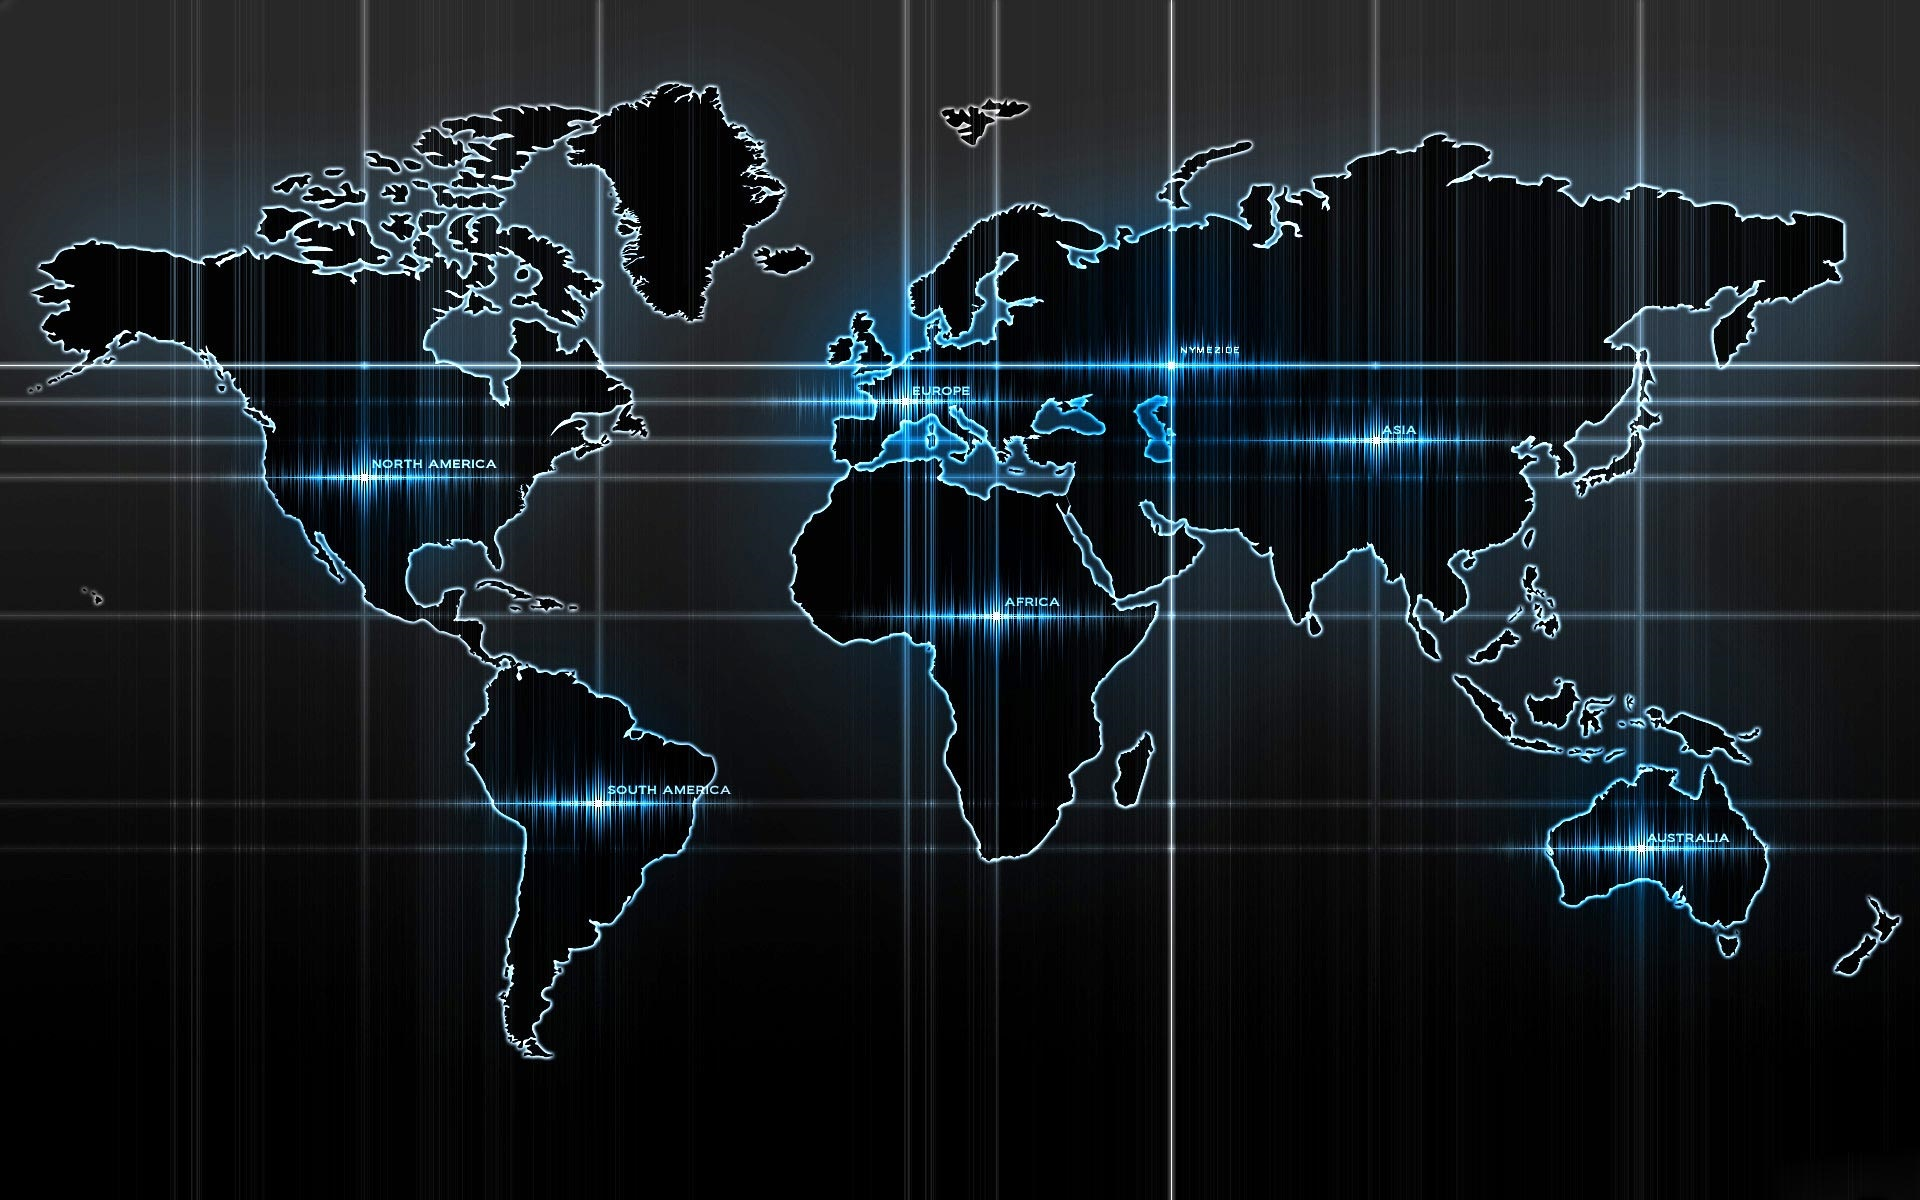 Wallpaper world map digital design 1920x1200 hd picture image download this wallpaper gumiabroncs Images